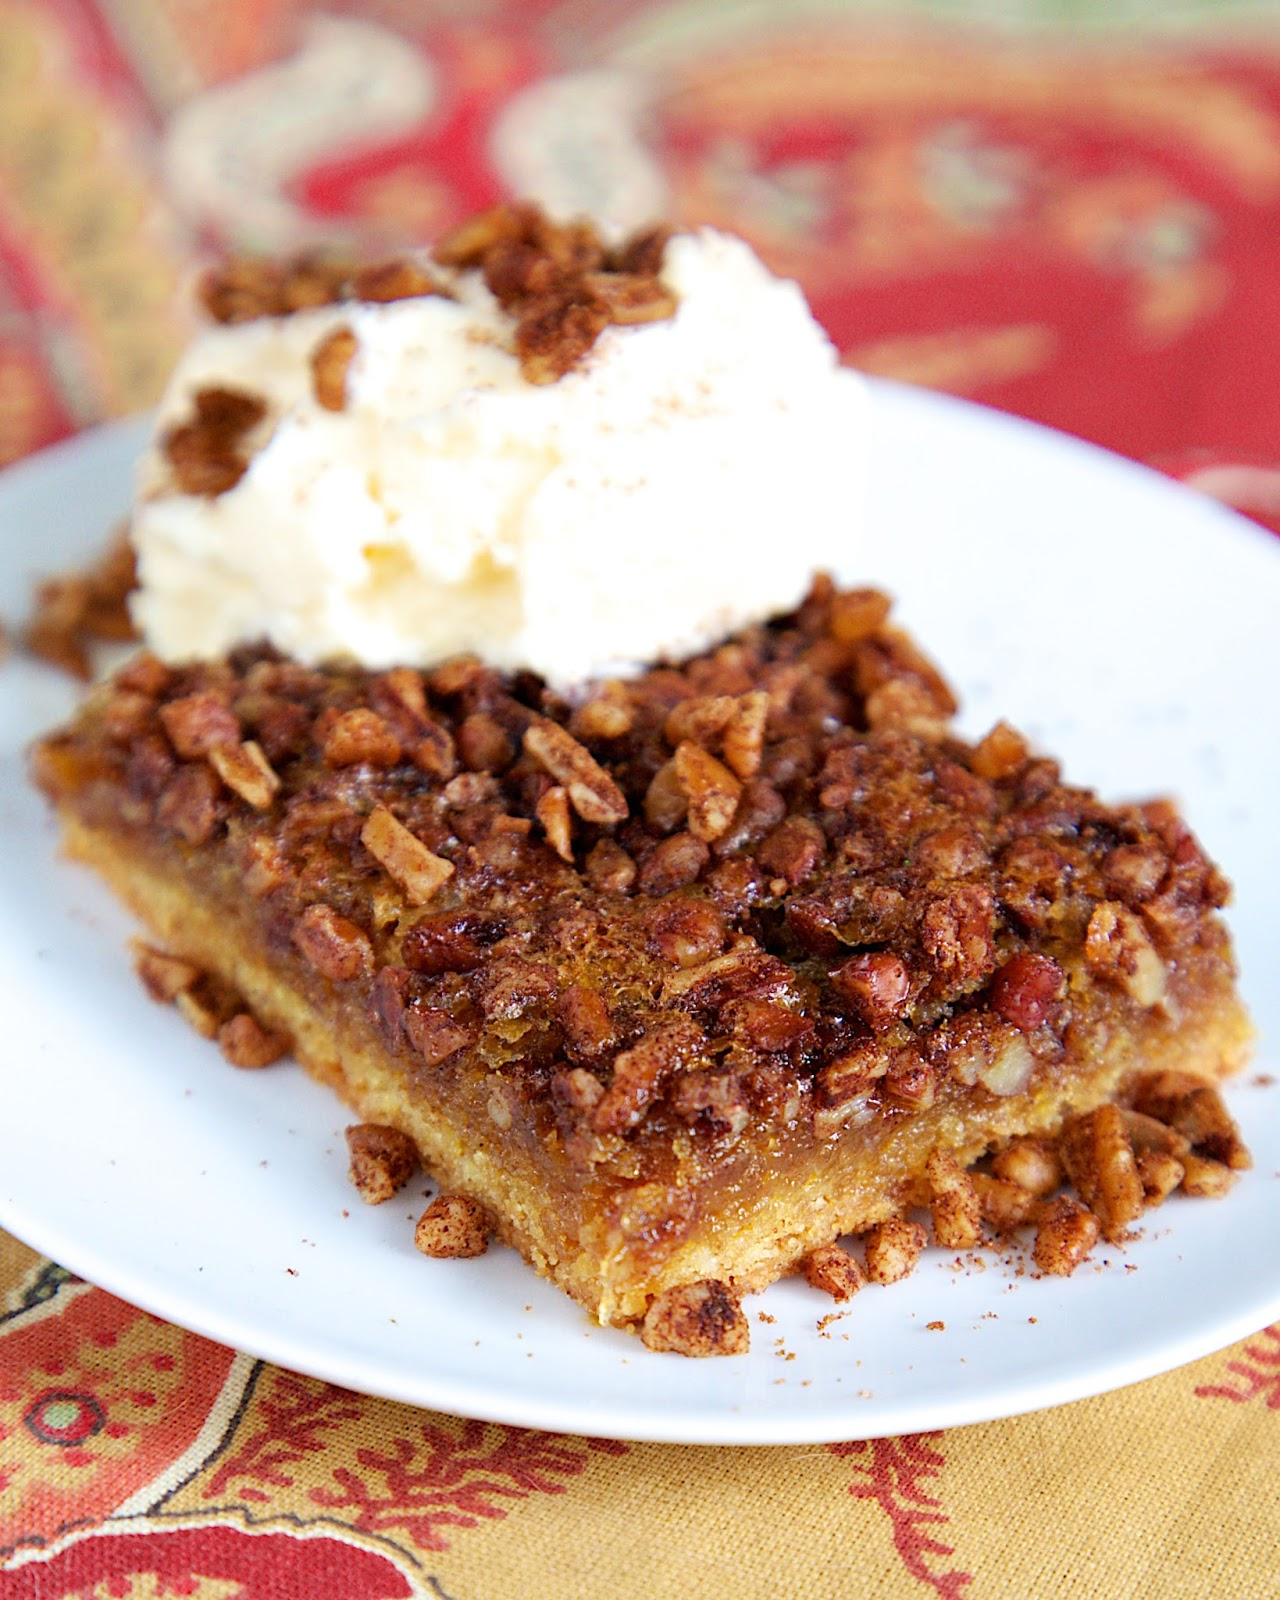 Gooey Pecan Bars - cake mix crust topped with yummy pecan pie filling. Serve warm with ice cream! Perfect for holiday meals! Everyone RAVES about this easy dessert recipe!